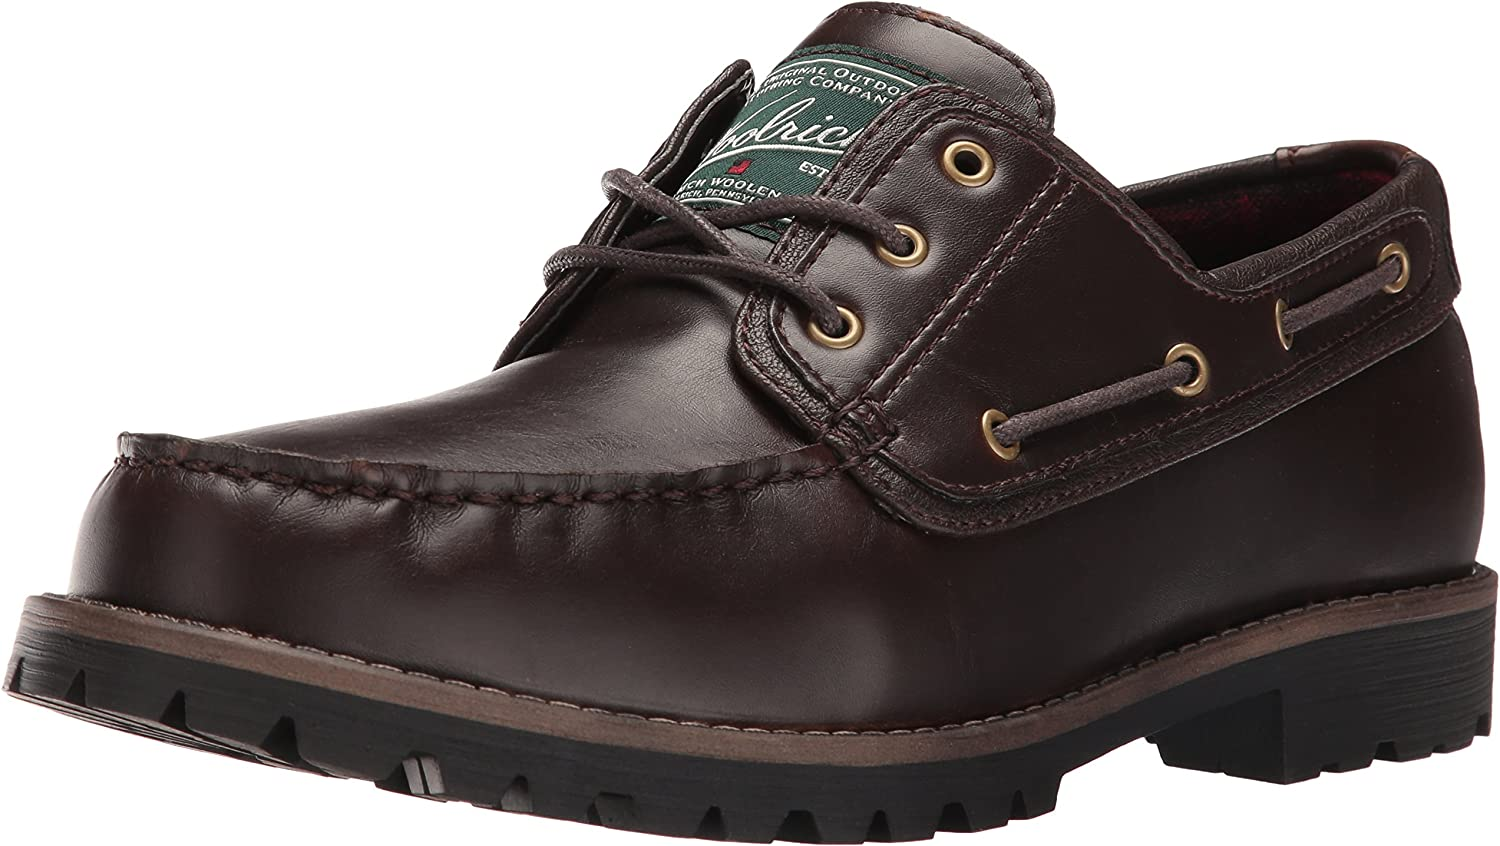 Woolrich Men's Trout Run Boat shoes